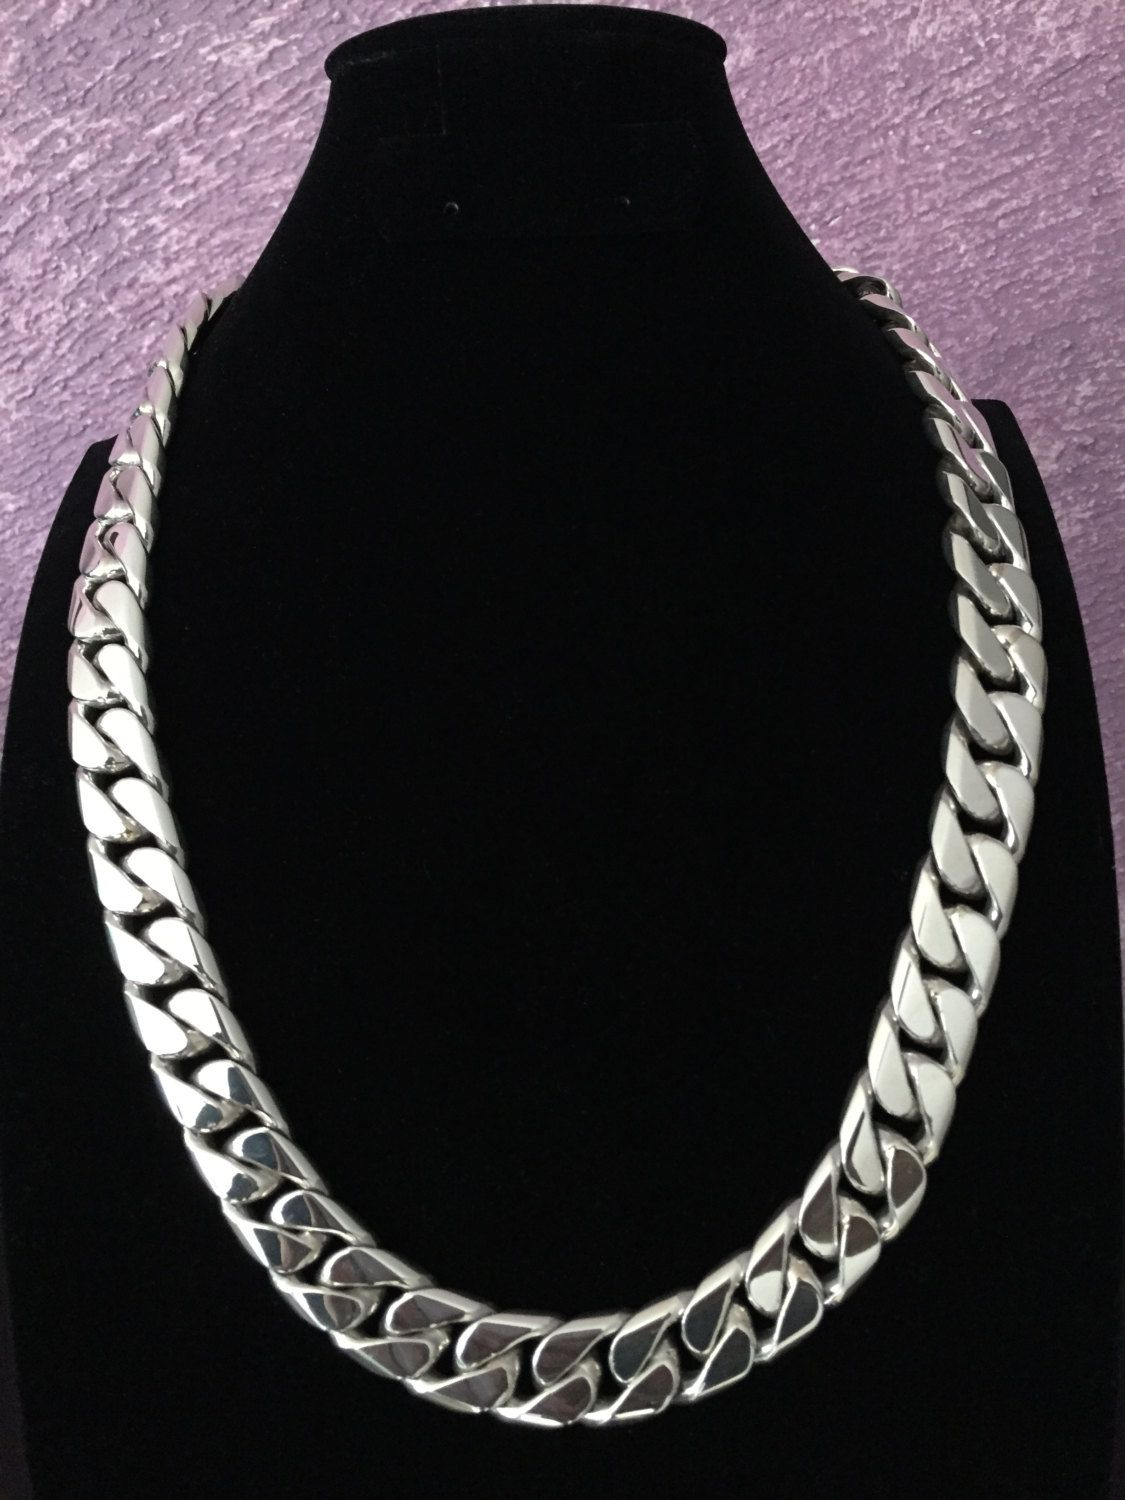 277b36df45356 Mens .925 Sterling Silver Thick and heavy Weight Barbado chain link ...